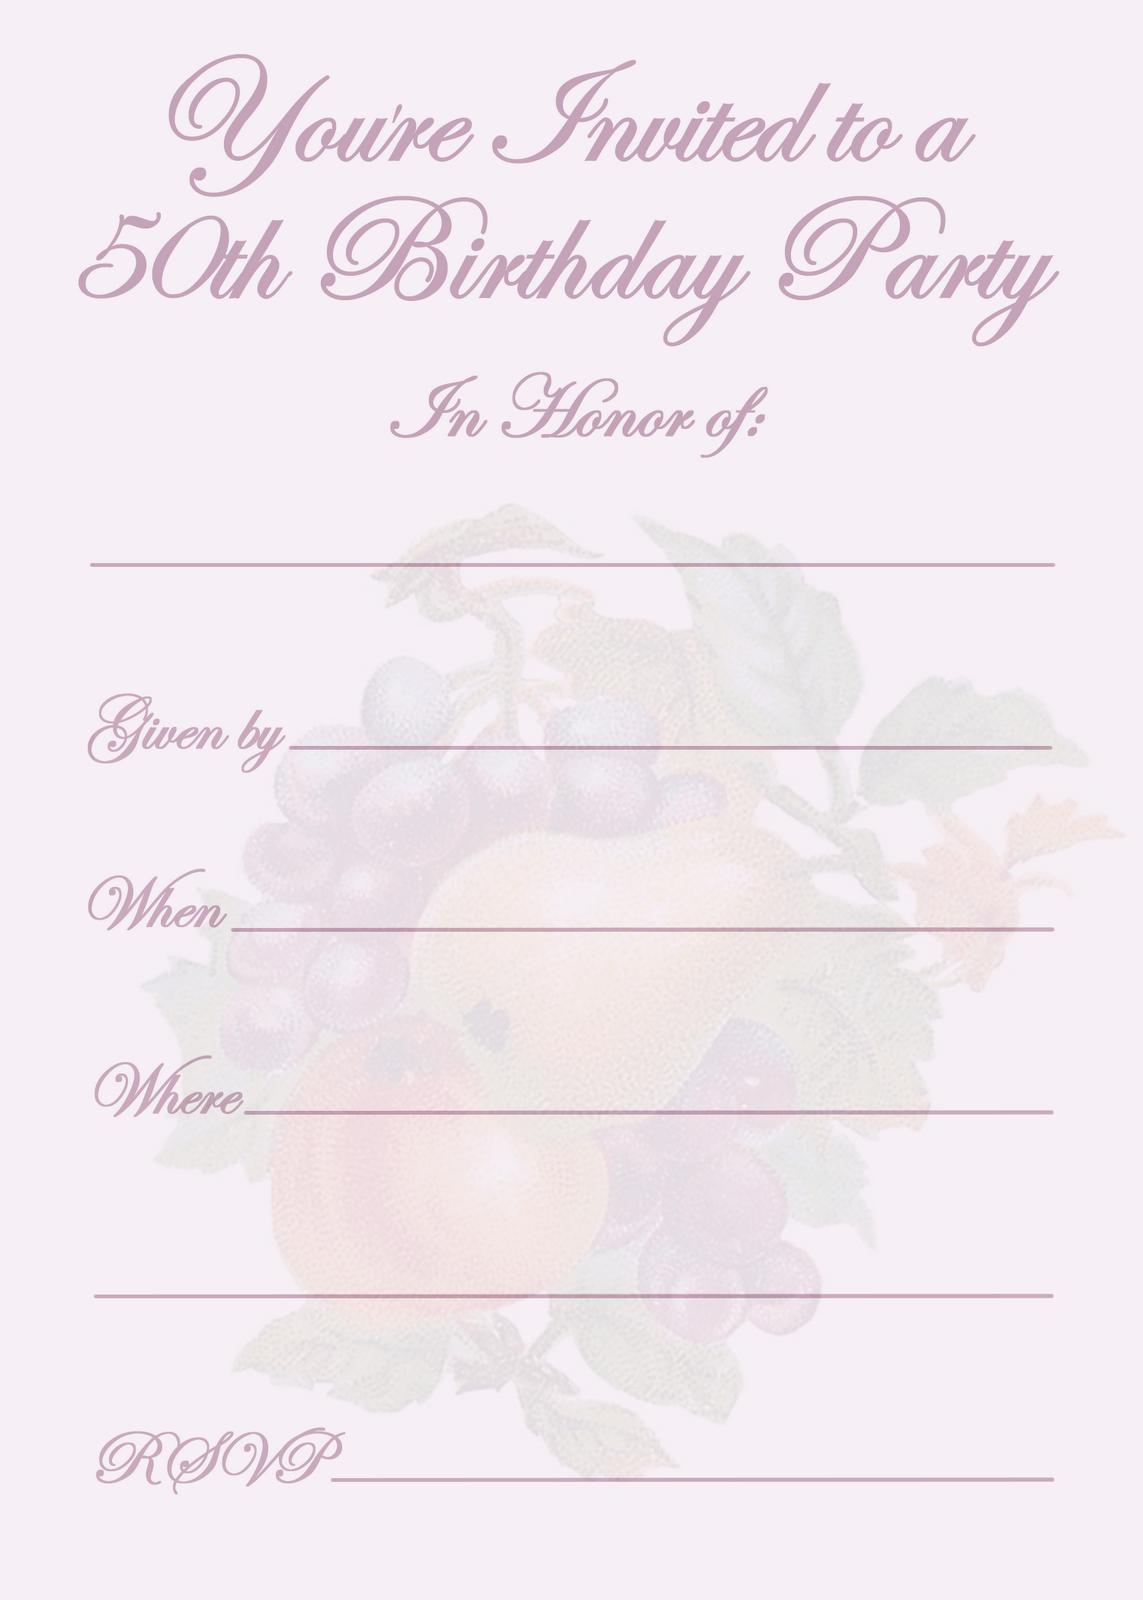 th birthday party invitation templates invitations design elegant 50th birthday party invitation template